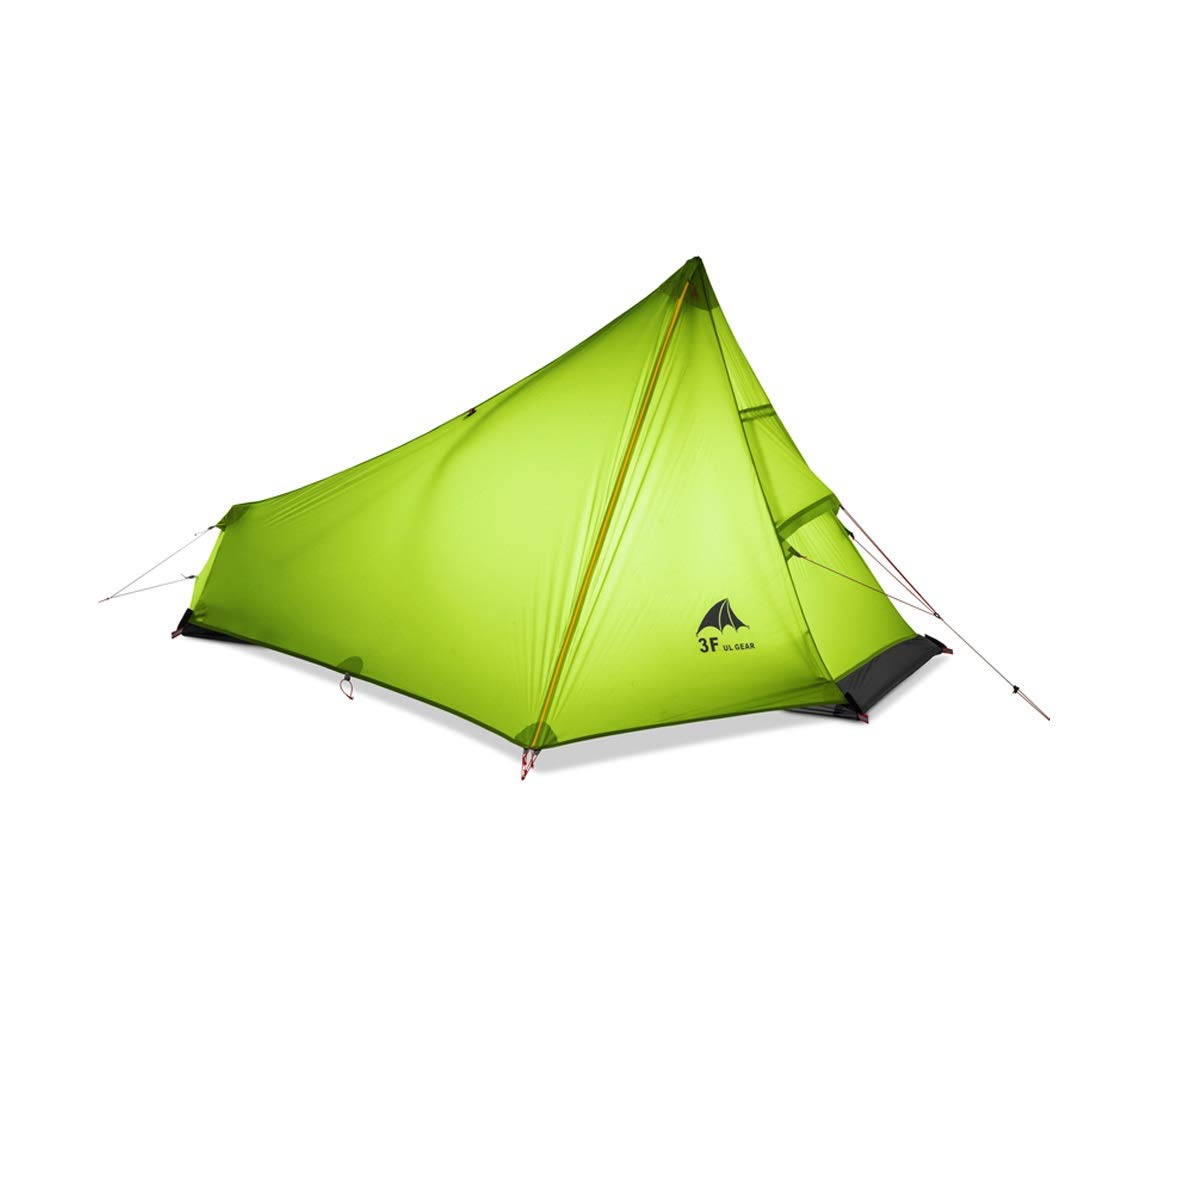 Yellow Haoyushangmao Outdoor Single Tent, Cycling Tent, Camping Tent, Thick and Warm, Ultra Light Material, Easy to Install The Latest Style, Simple